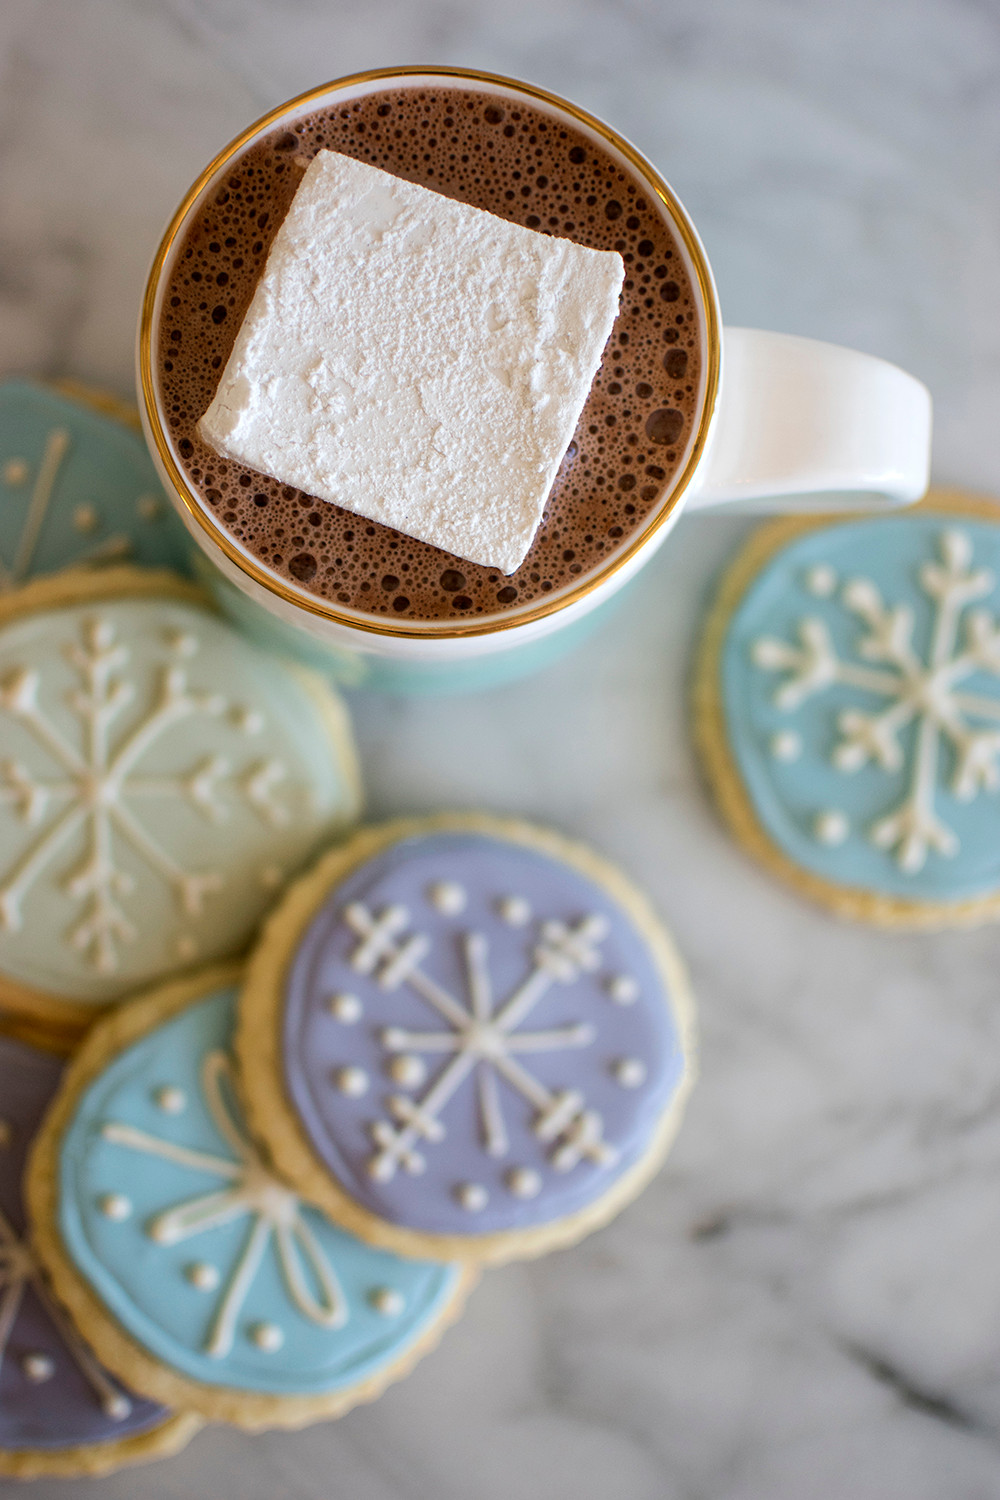 marshmallow dipped in hot cocoa